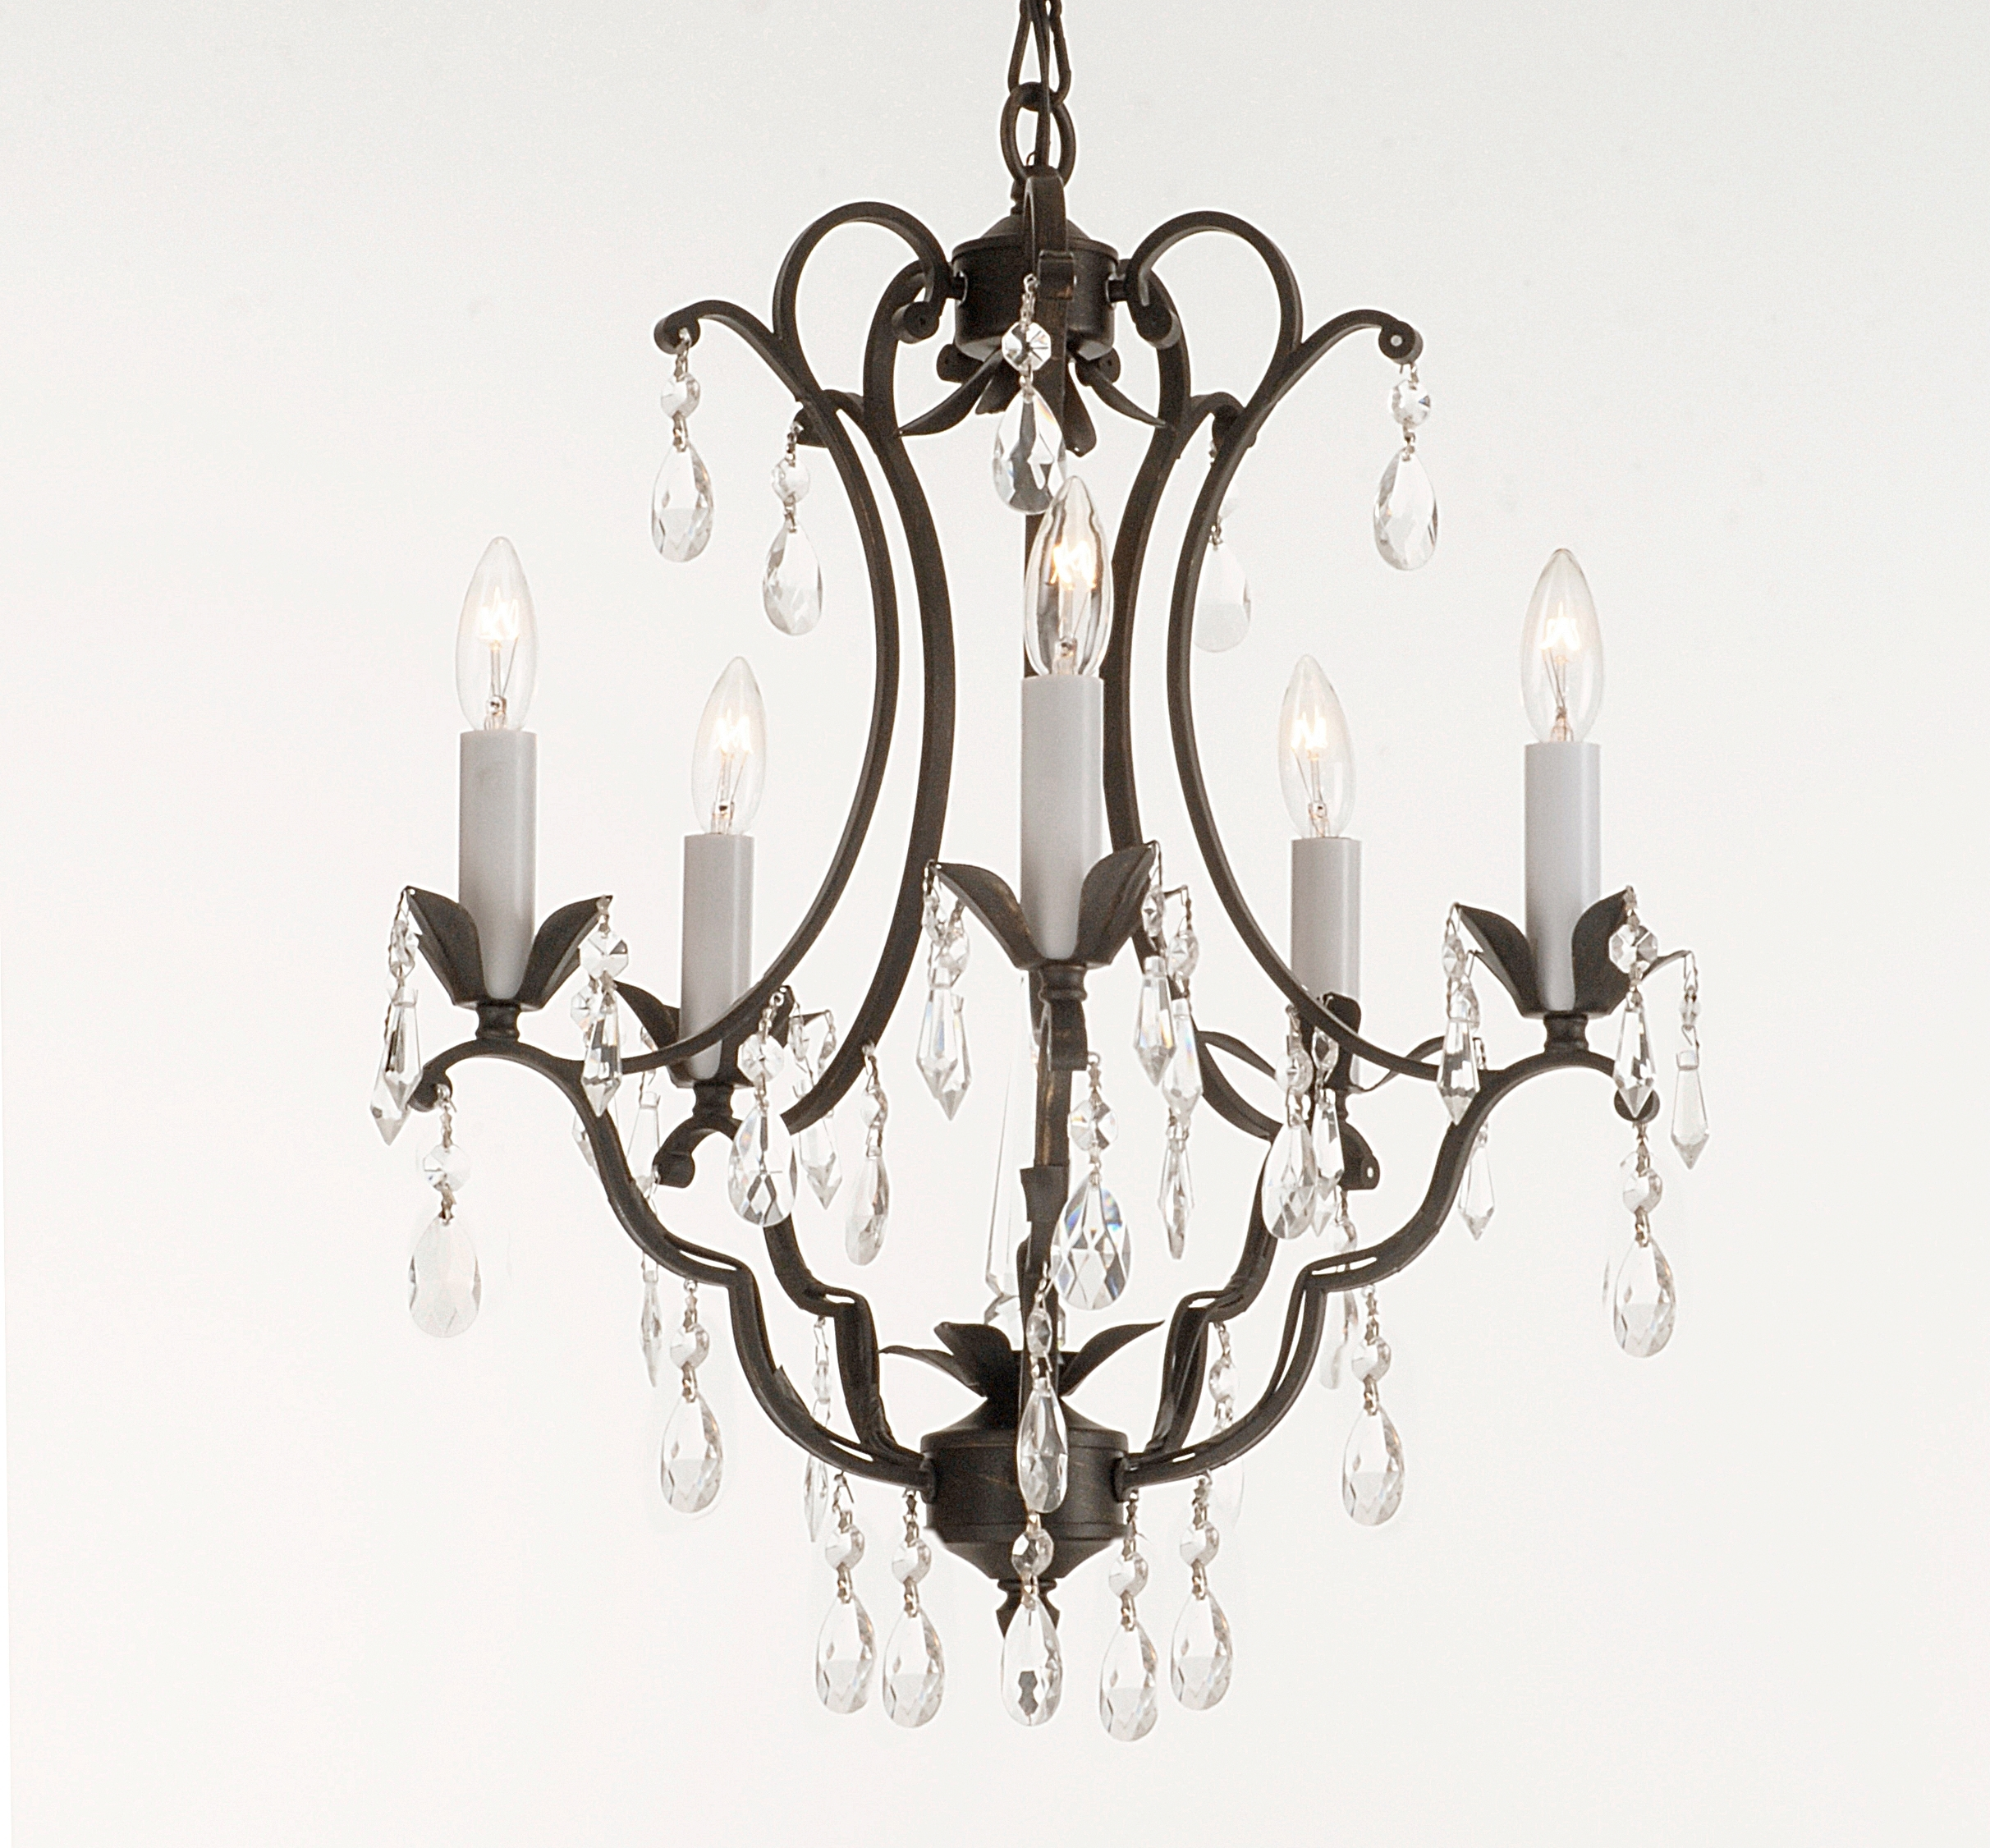 Preferred Light : Furniture Vintage Look Modern Black Wrought Iron Chandeliers Within Vintage Wrought Iron Chandelier (View 19 of 20)